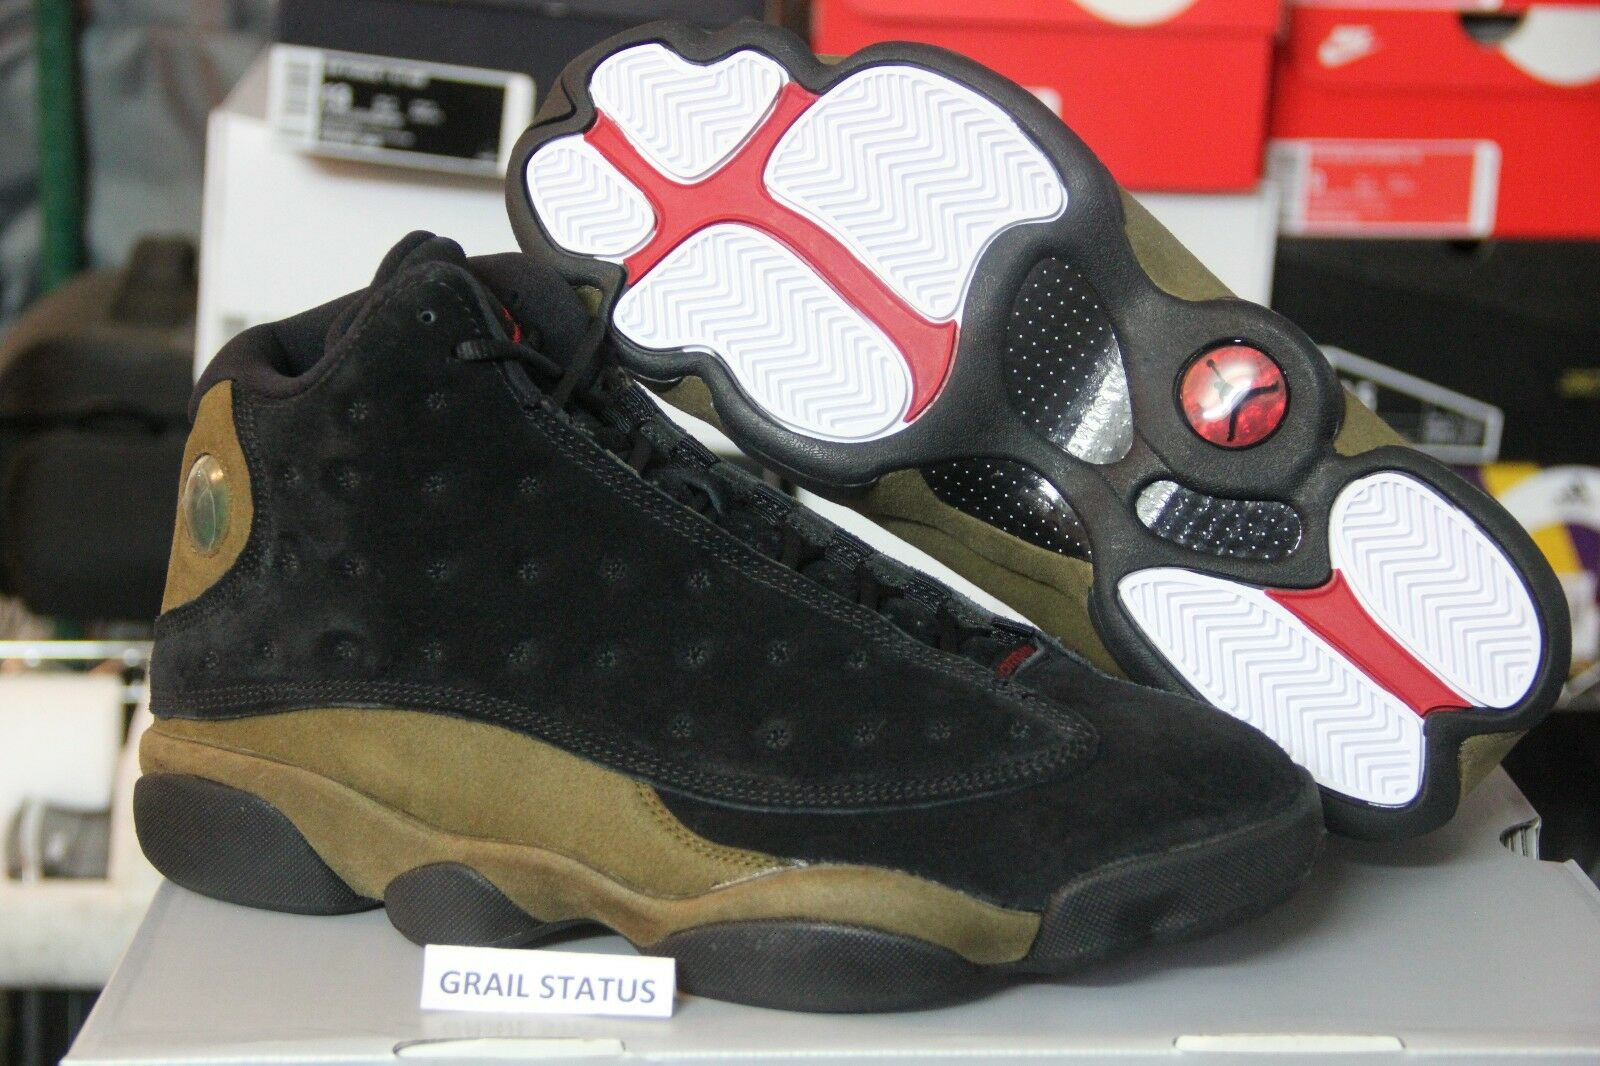 info for 44da9 34ad9 ... best price 2018 hombre nike air jordan 13 retro xiii rojo olive negro  true rojo xiii